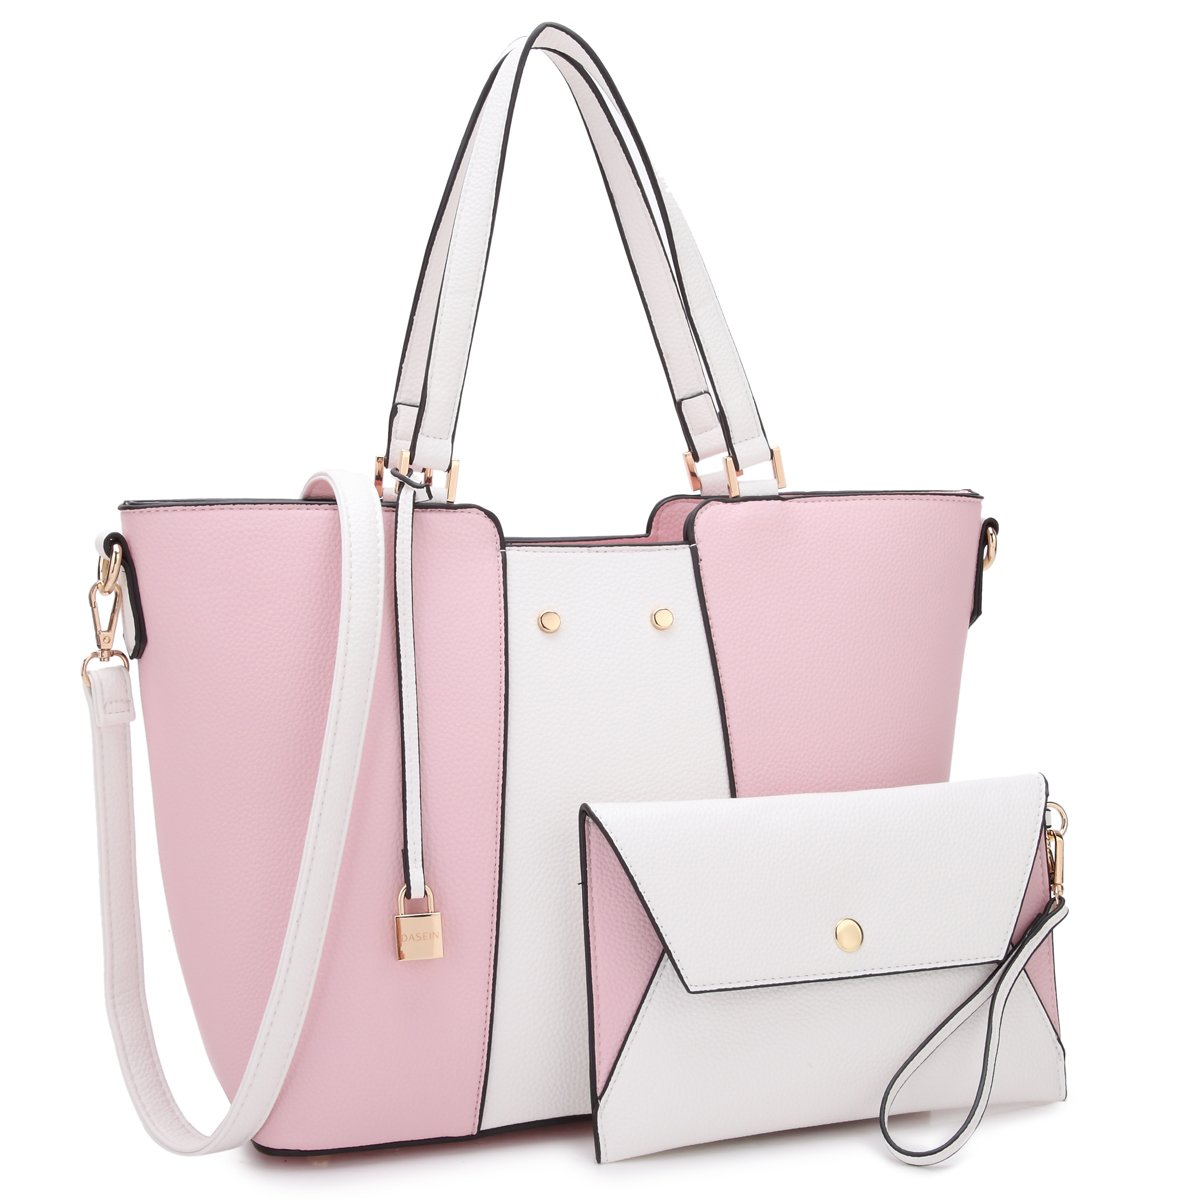 MMK collection Fashion Women Purses and Handbags Ladies Designer Satchel Tote Bag Shoulder Bags and coin purse (7608-PK/WT)